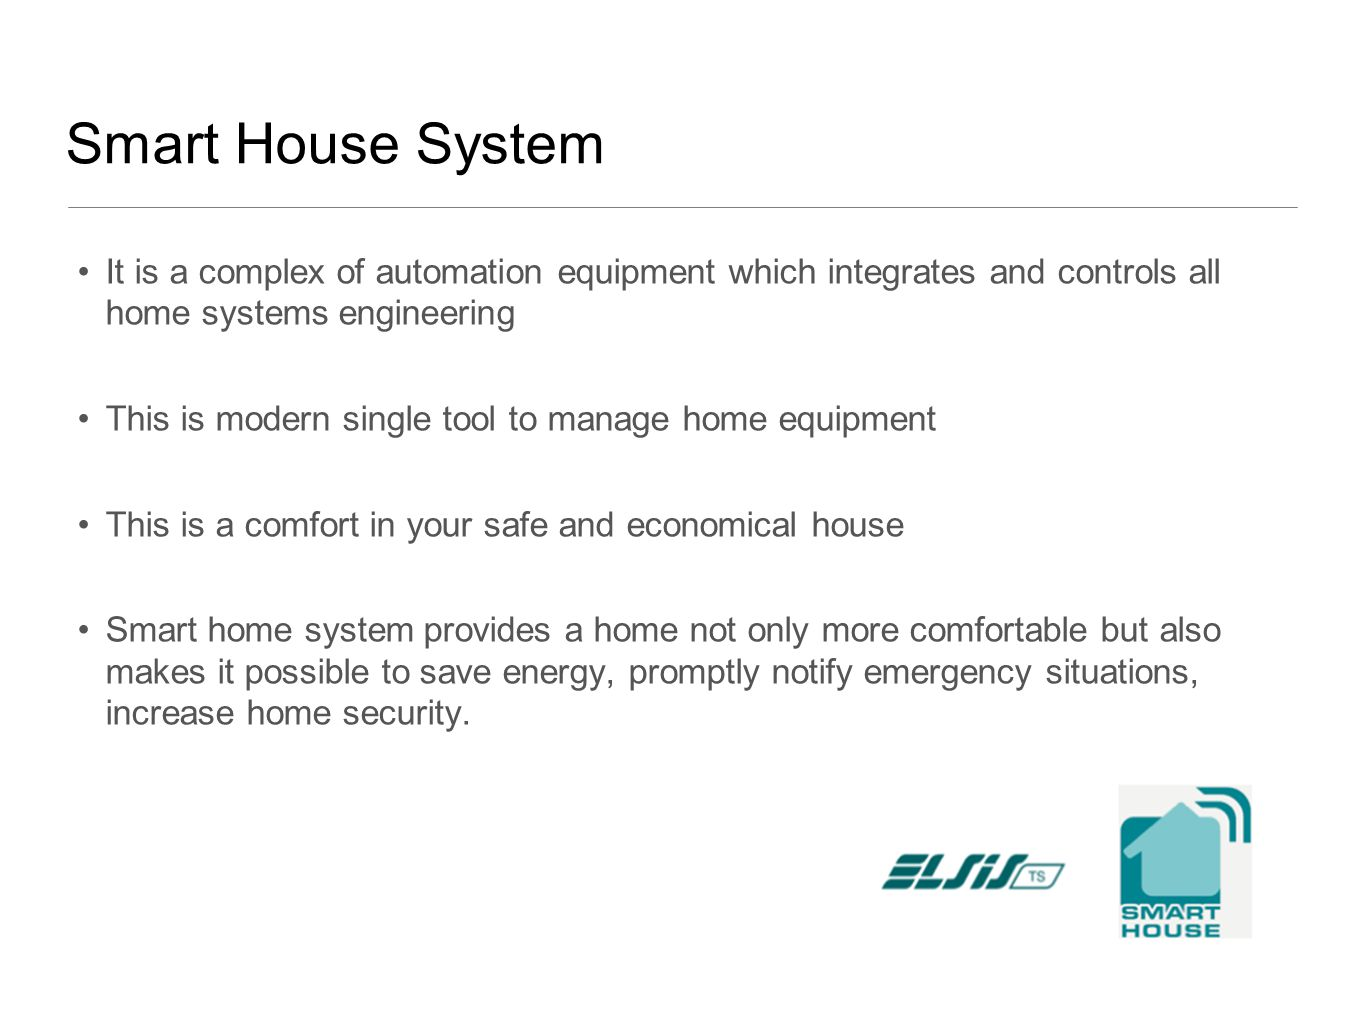 It is a complex of automation equipment which integrates and controls all home systems engineering This is modern single tool to manage home equipment